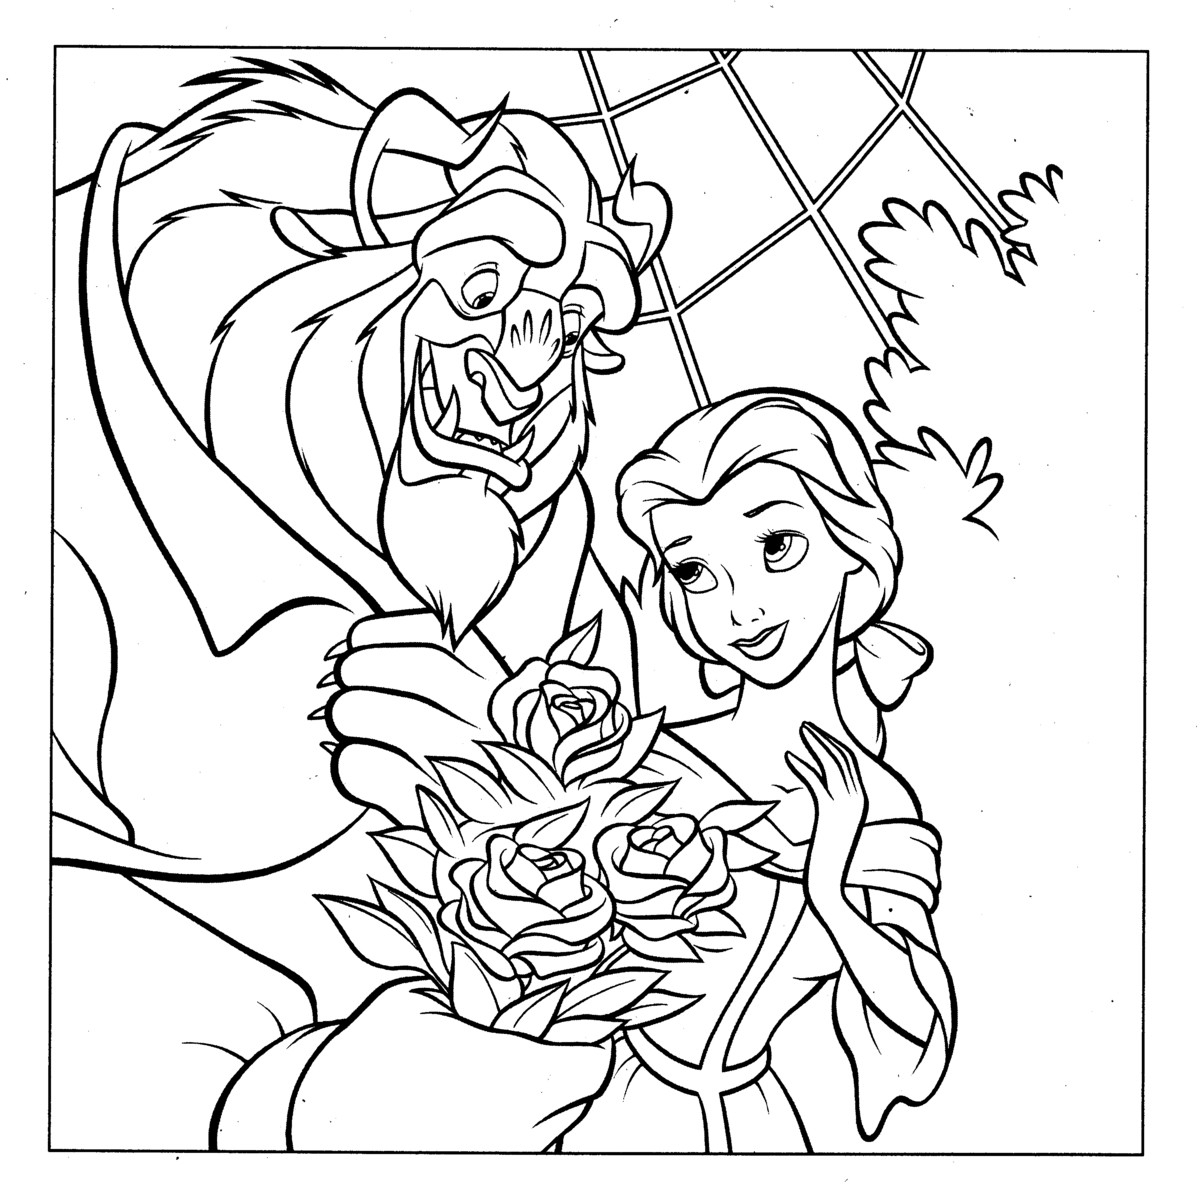 beauty and the beast coloring pages - disney beauty and the beast coloring